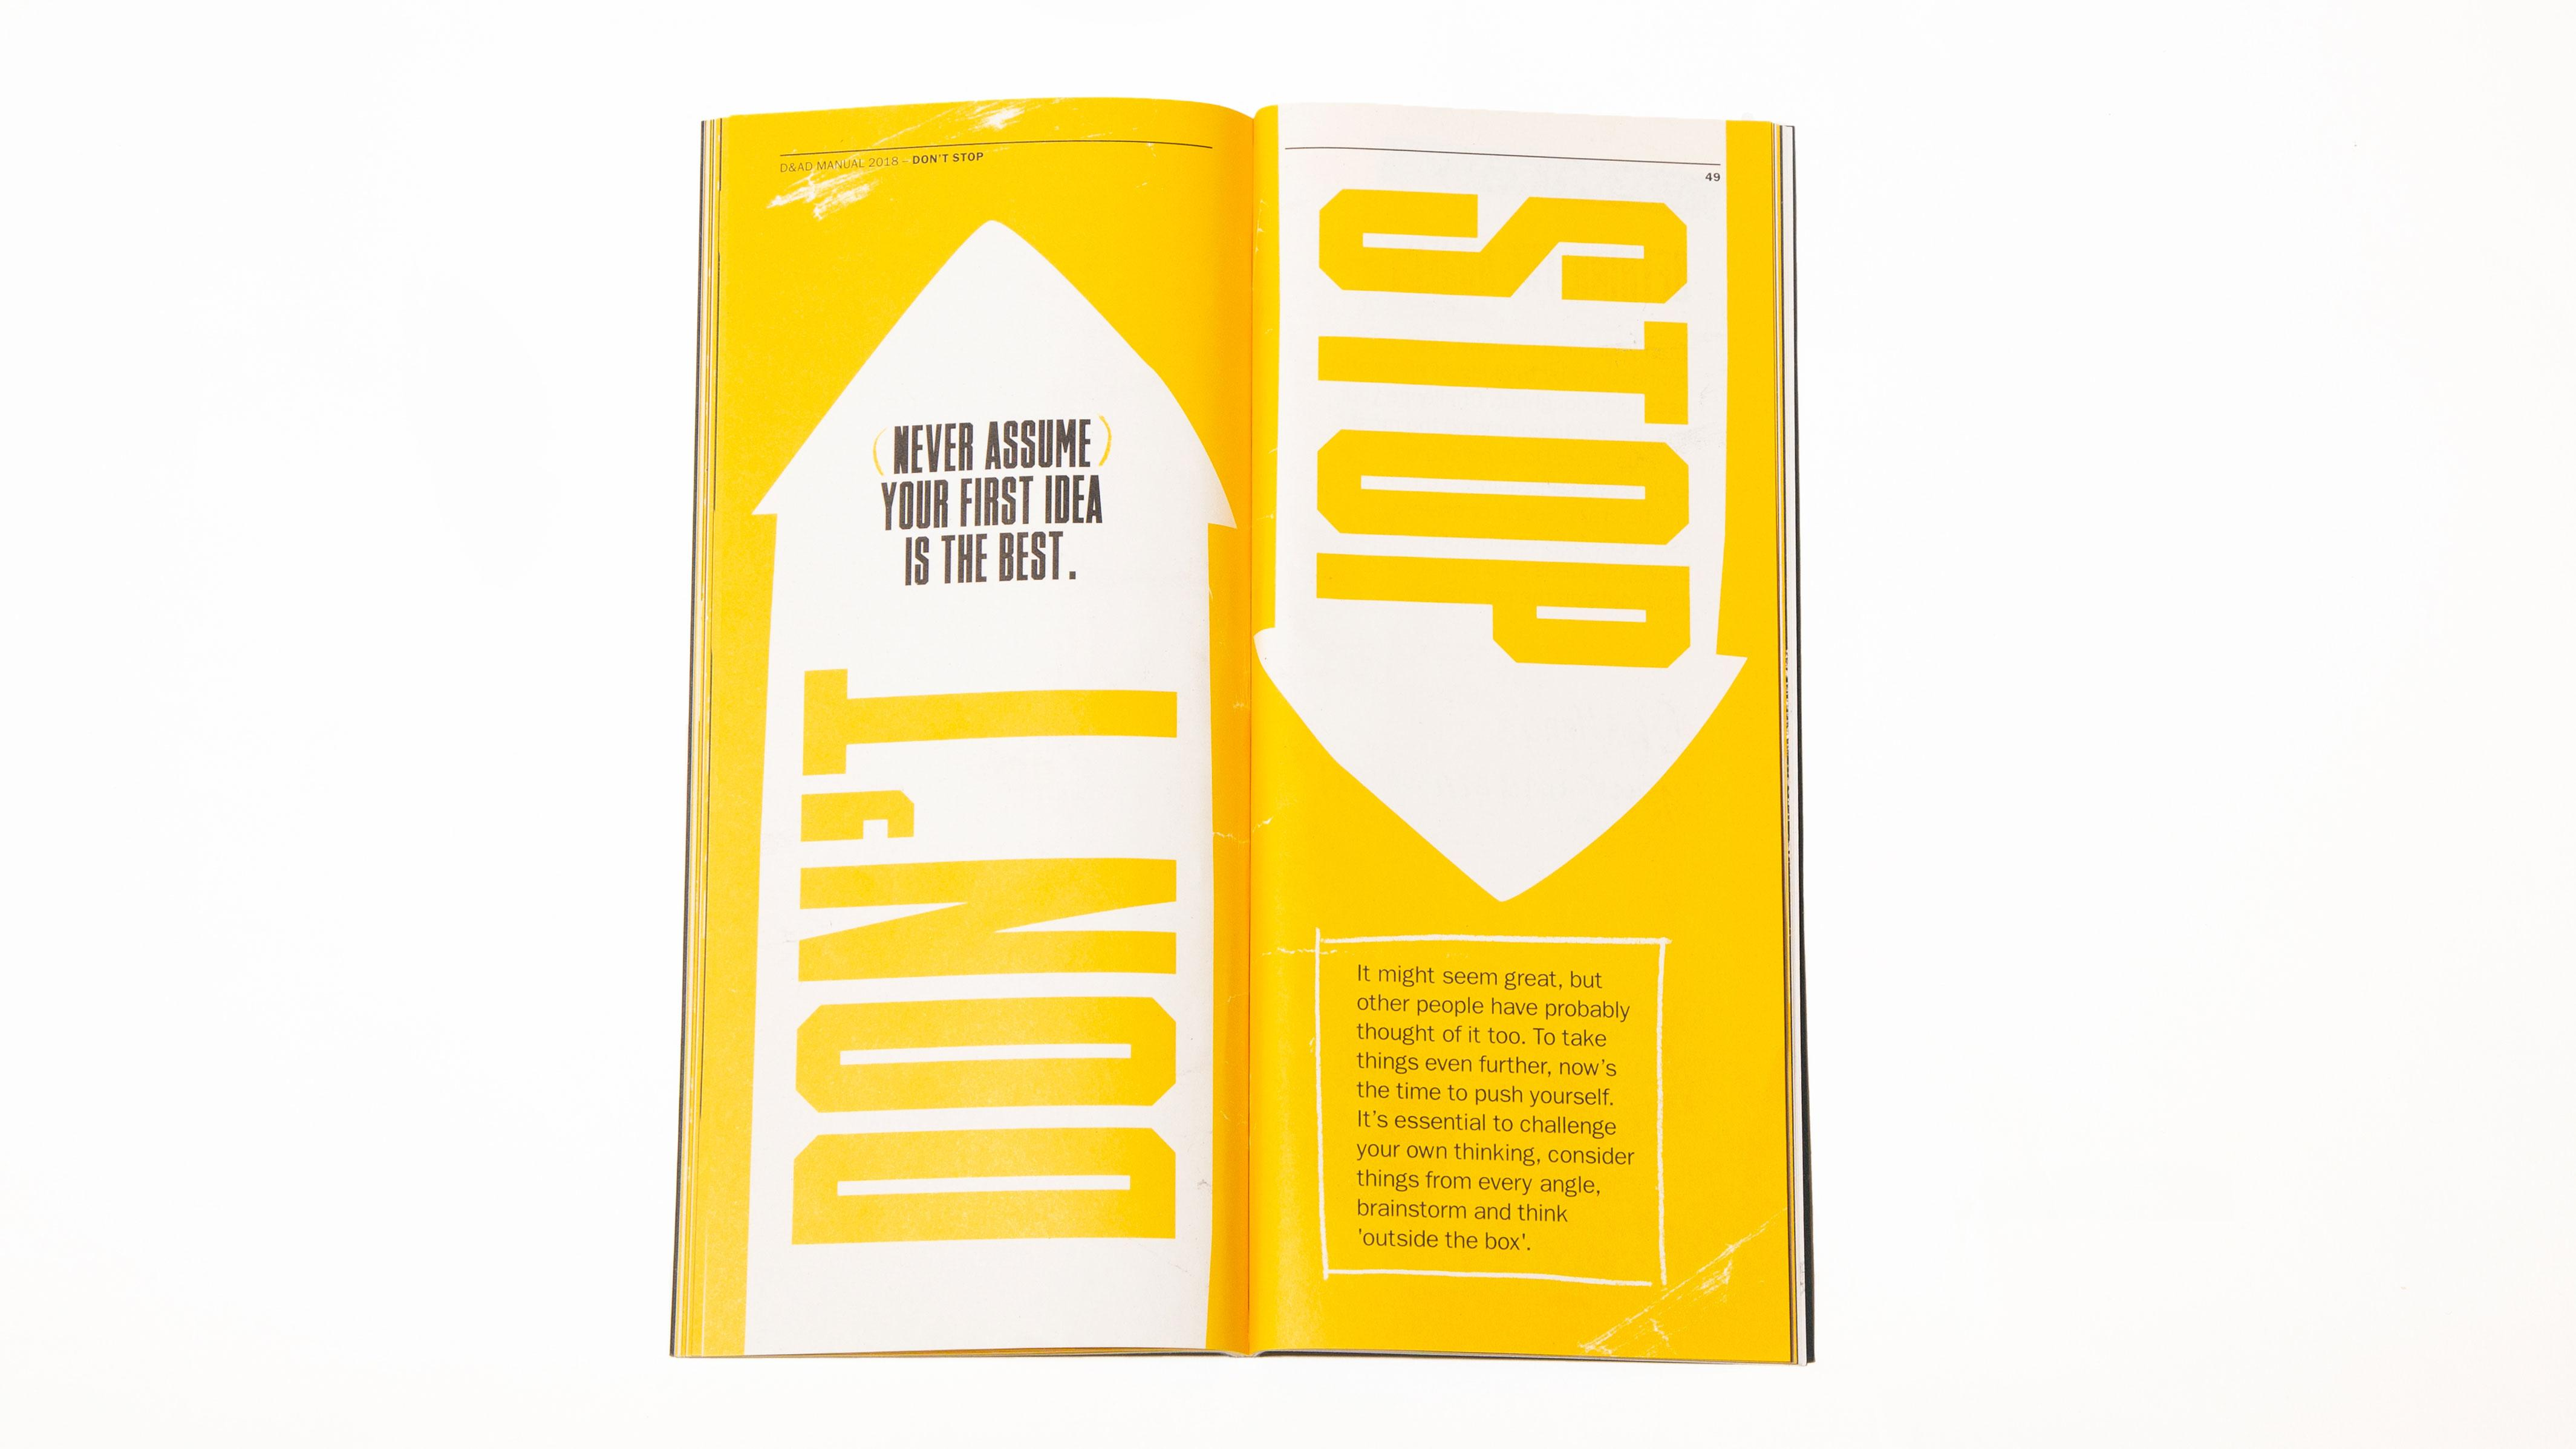 The Manual contains wisdom on how young creatives can succeed